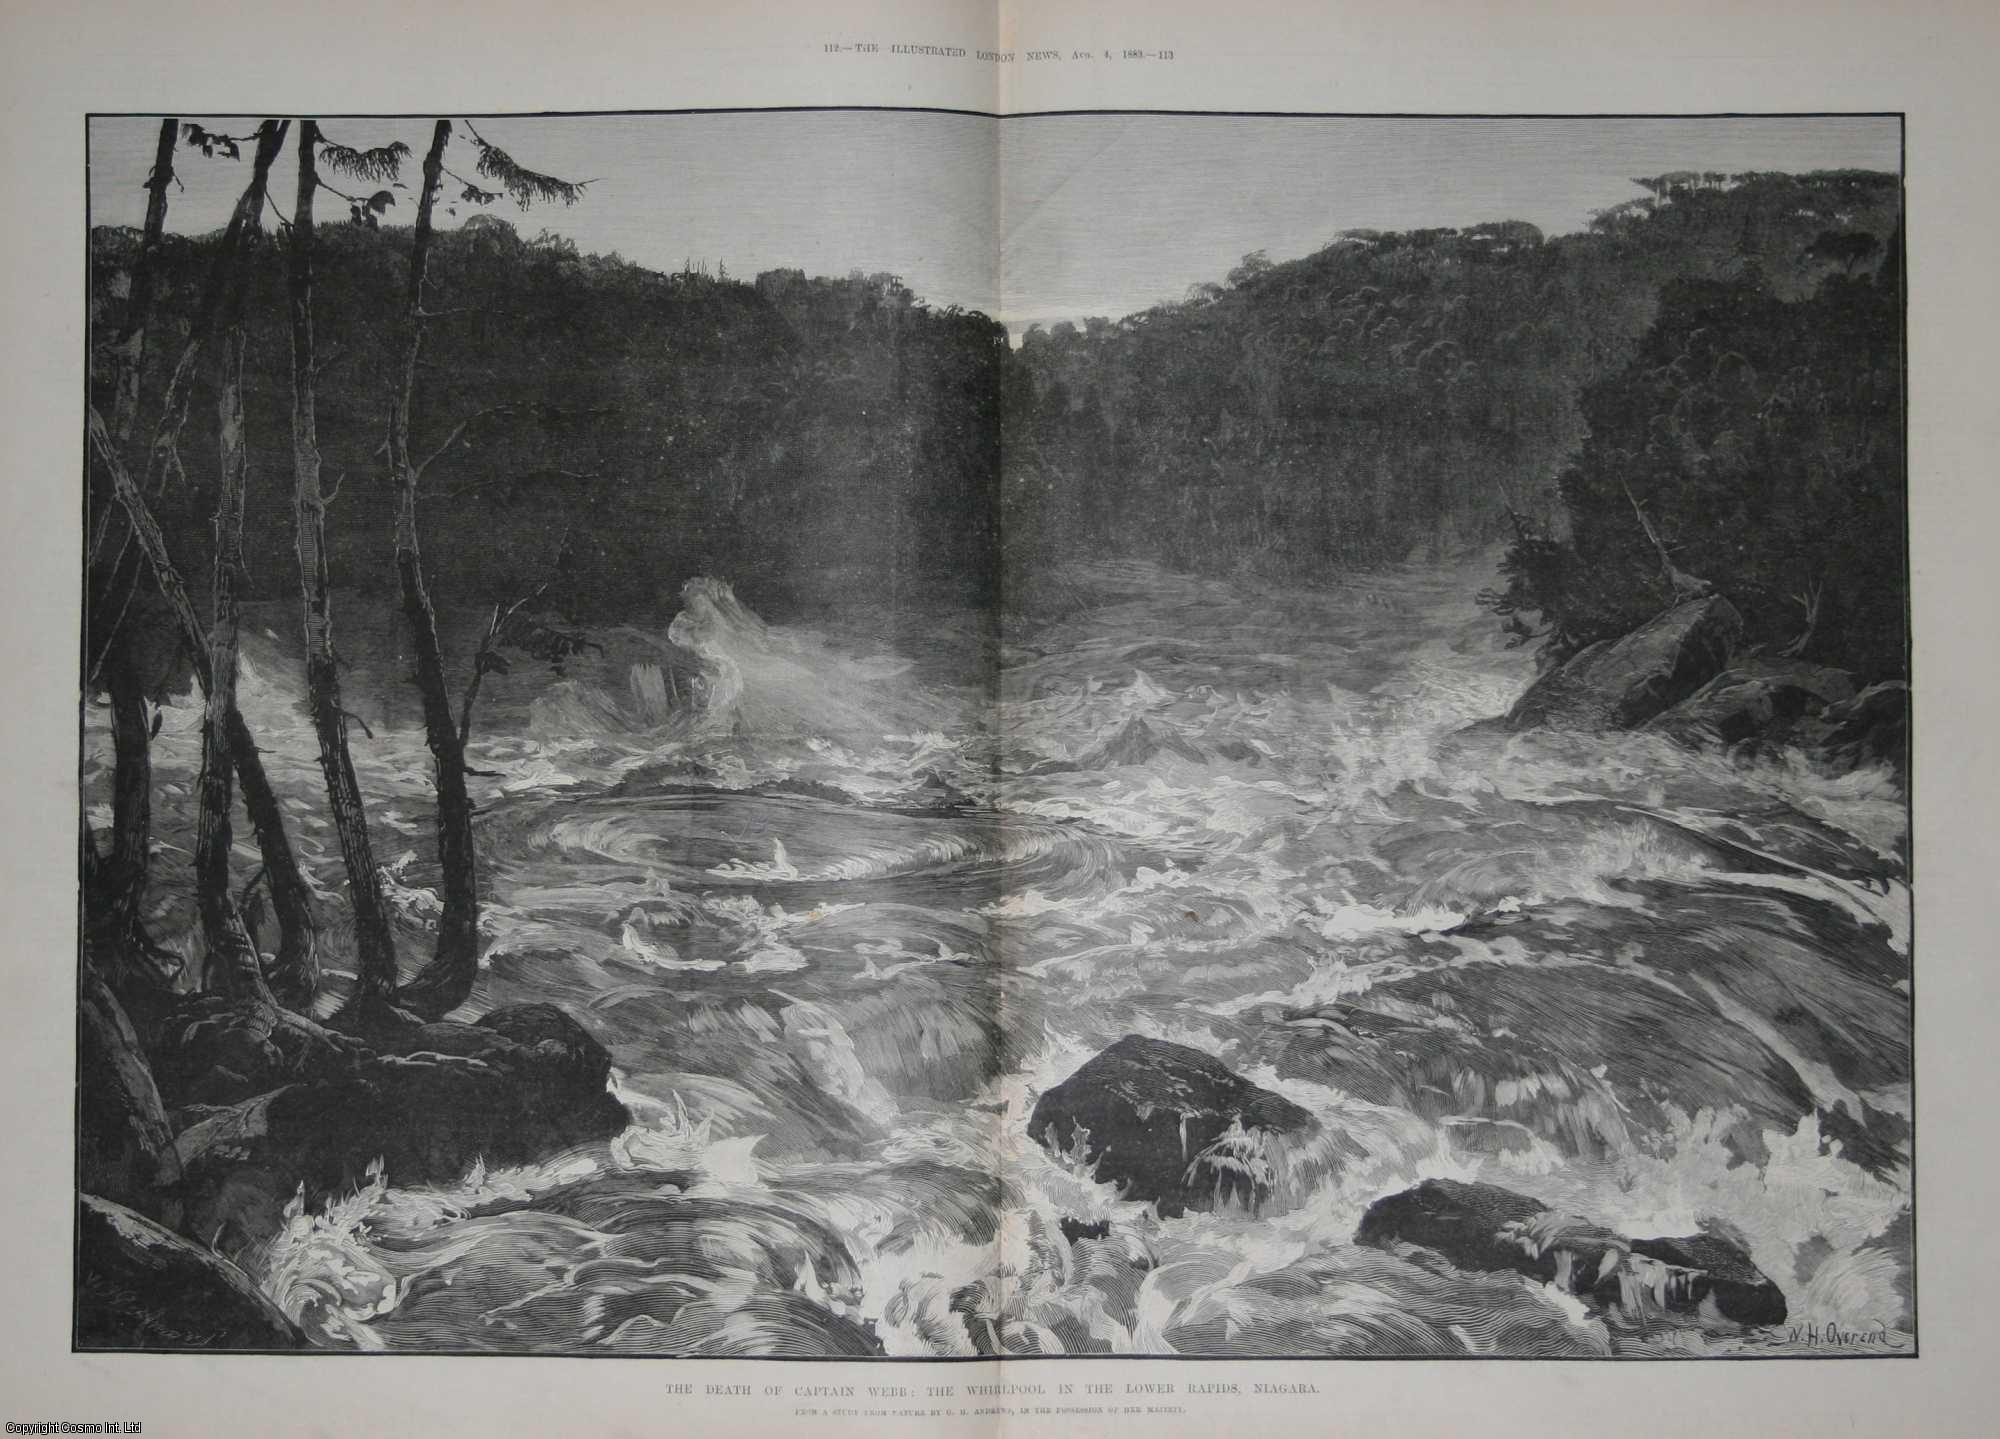 ENGRAVING, W.H. OVEREND - Captain Matthew Webb, the celebrated swimmer. His death in the whirlpool in the Lower Rapids, Niagara. Together with accompanying text and other engravings. 1883.